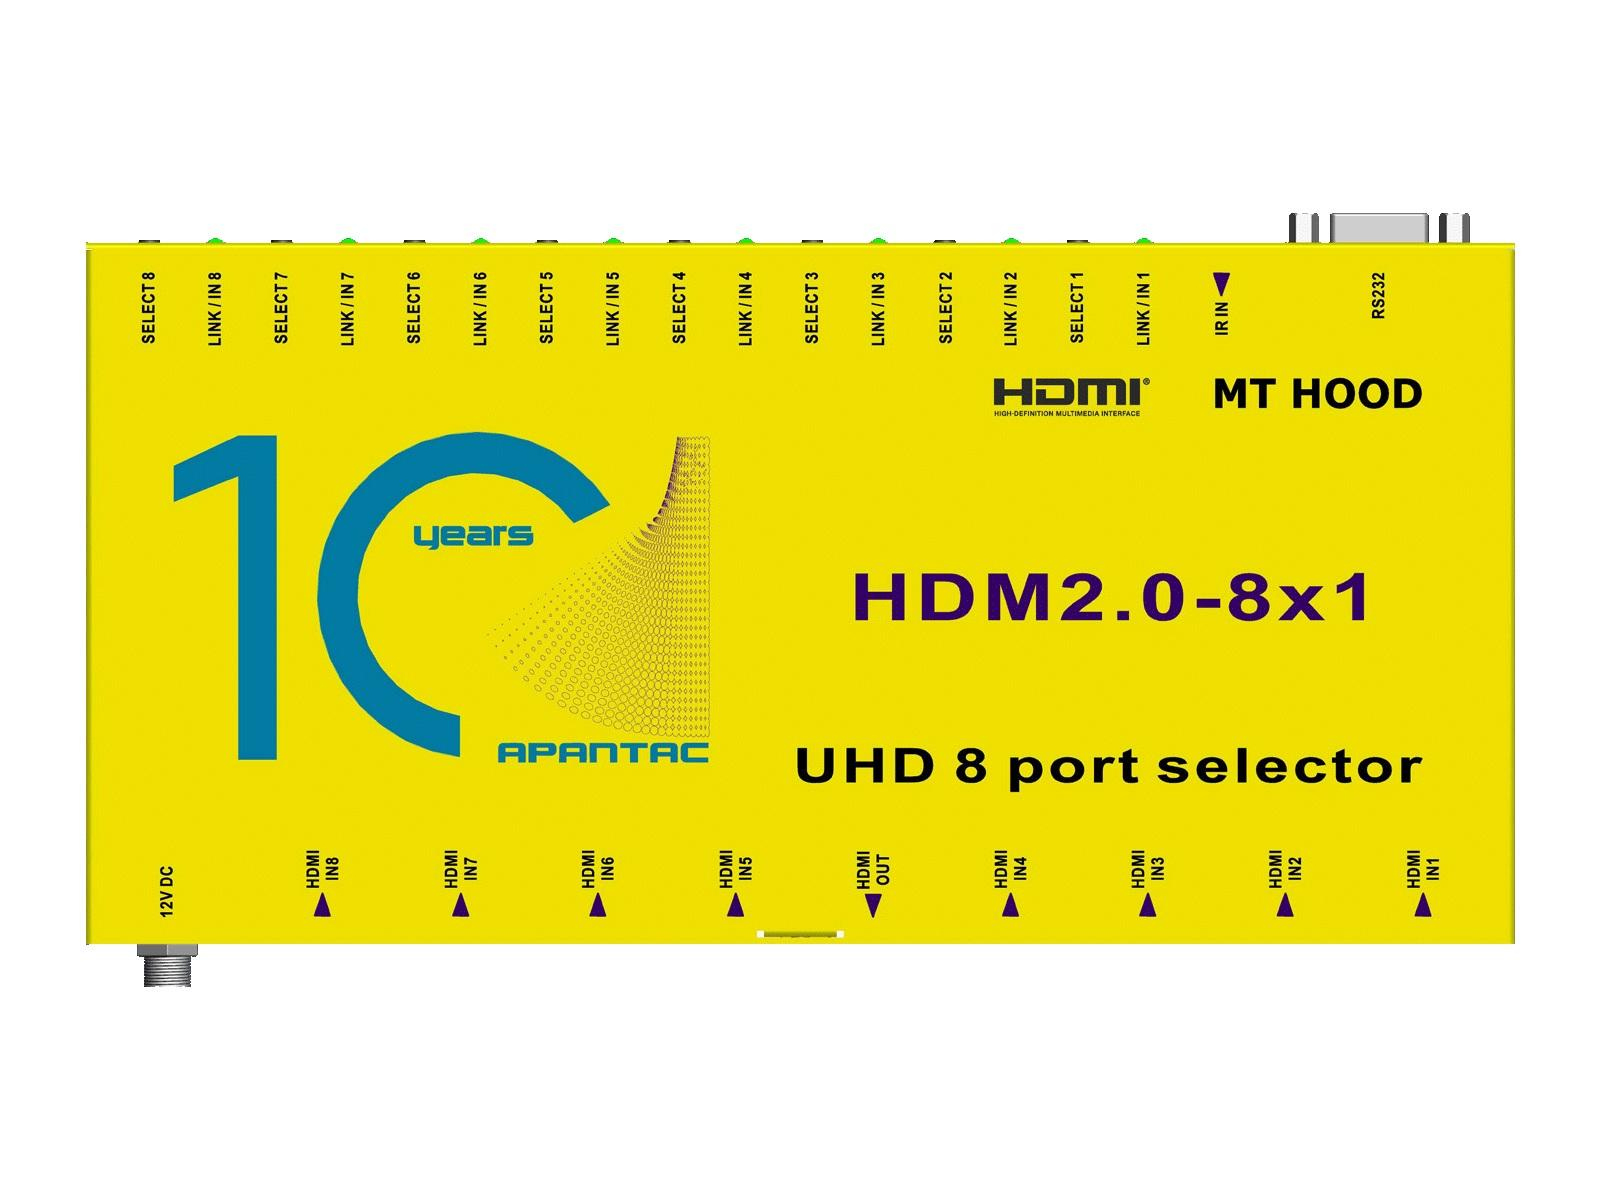 HDM2.0-8x1 8x1 4K 60Hz HDMI 2.0 and HDCP 2.2 Switch by Apantac